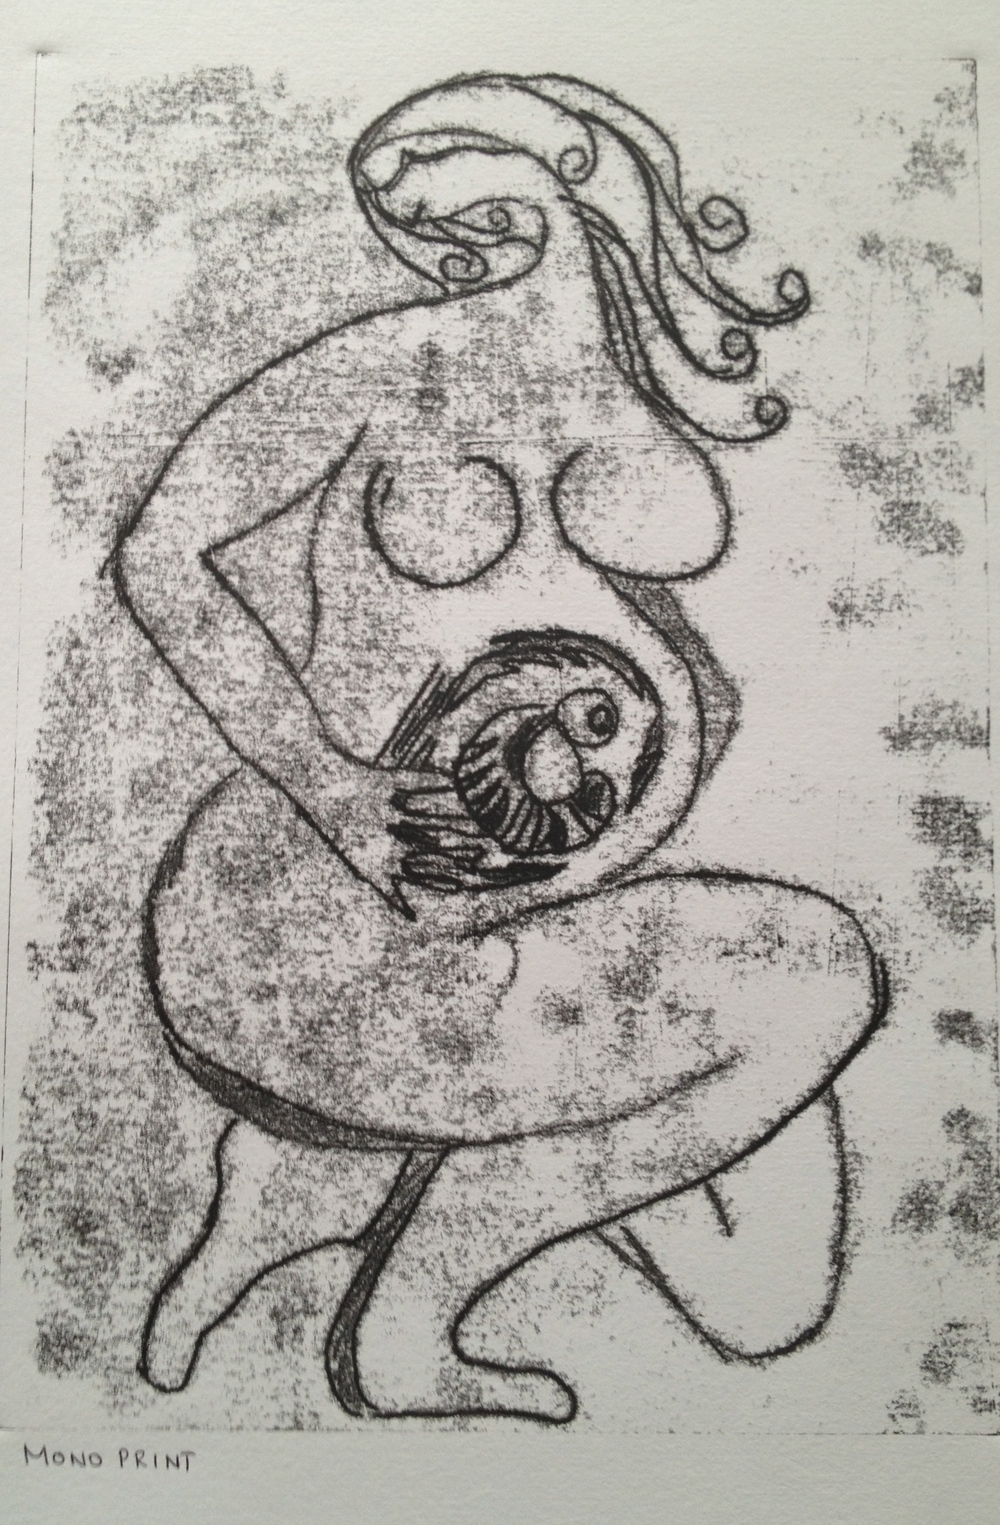 Untitled Monoprint 42 x 59.4 cms 2013